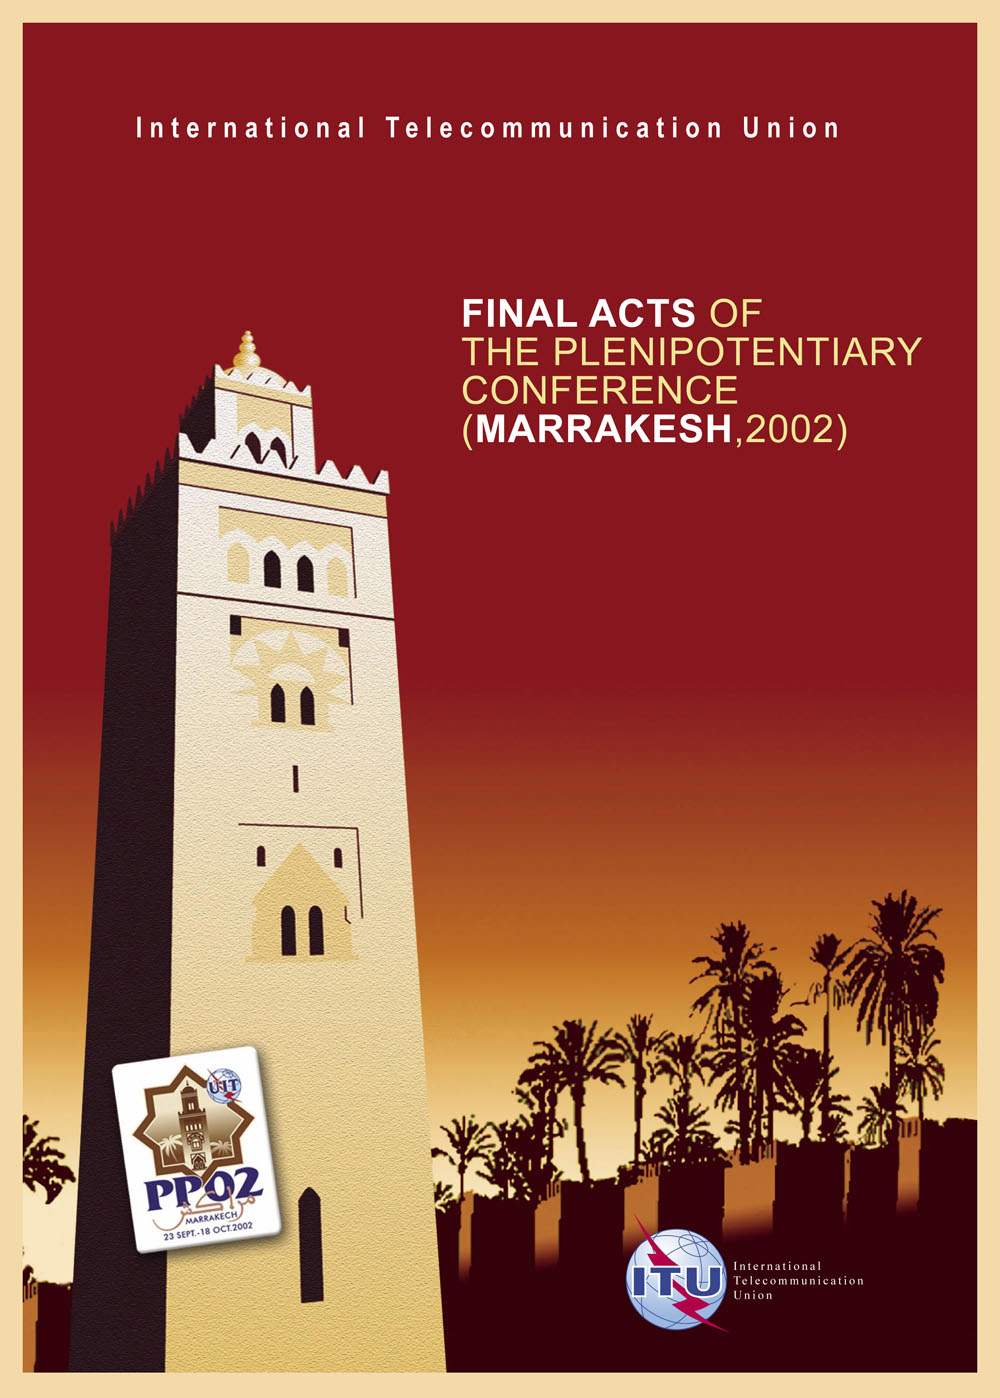 Plenipotentiary Conference (Marrakesh, 2002)